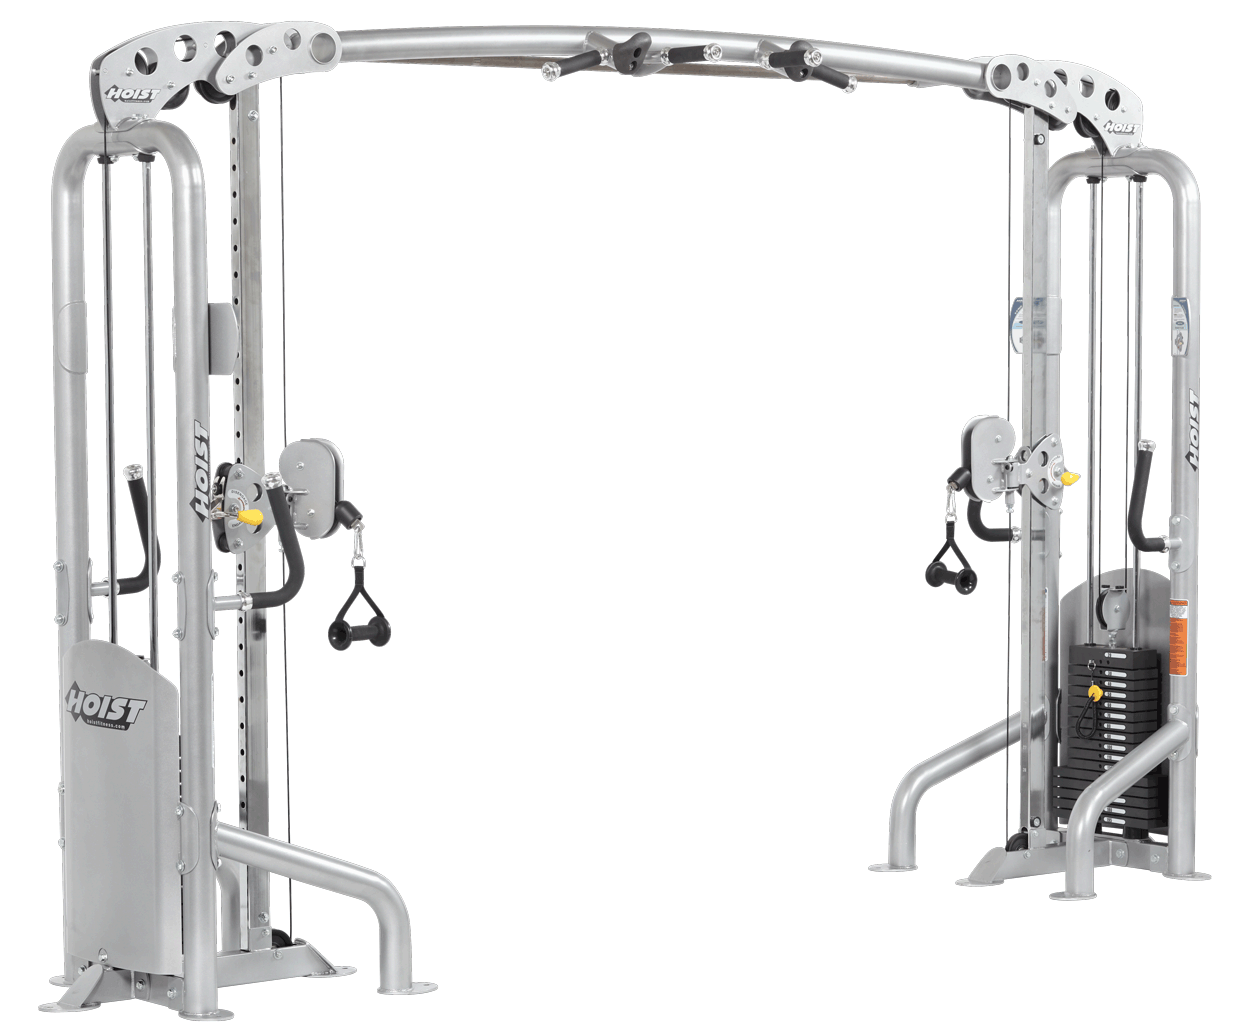 Cmd 6180 Cable Crossover Hoist Fitness